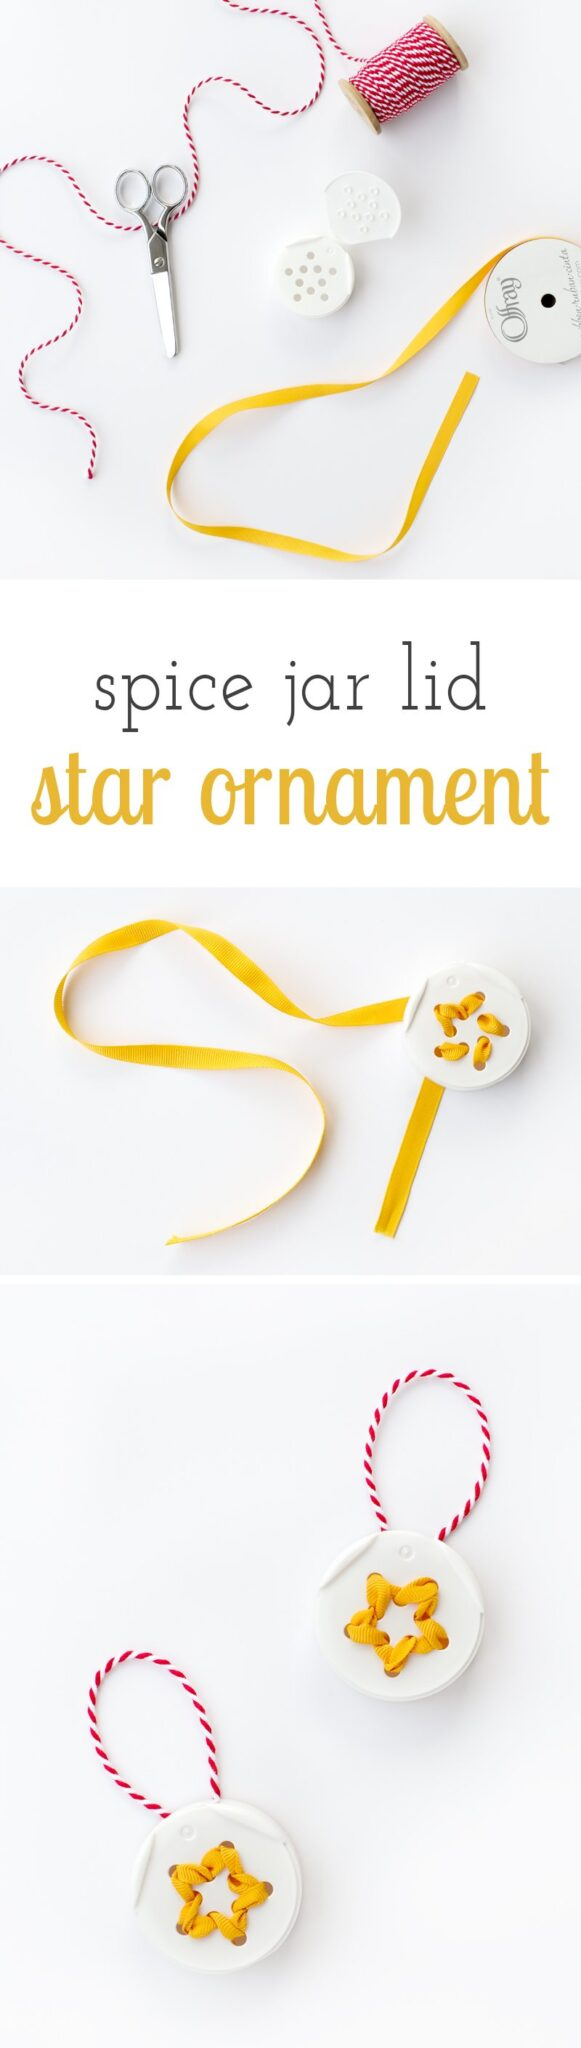 Turn trash into treasure! Kids of all ages will love creating unique Spice Jar Lid Star Ornaments from the lids of spice jars.